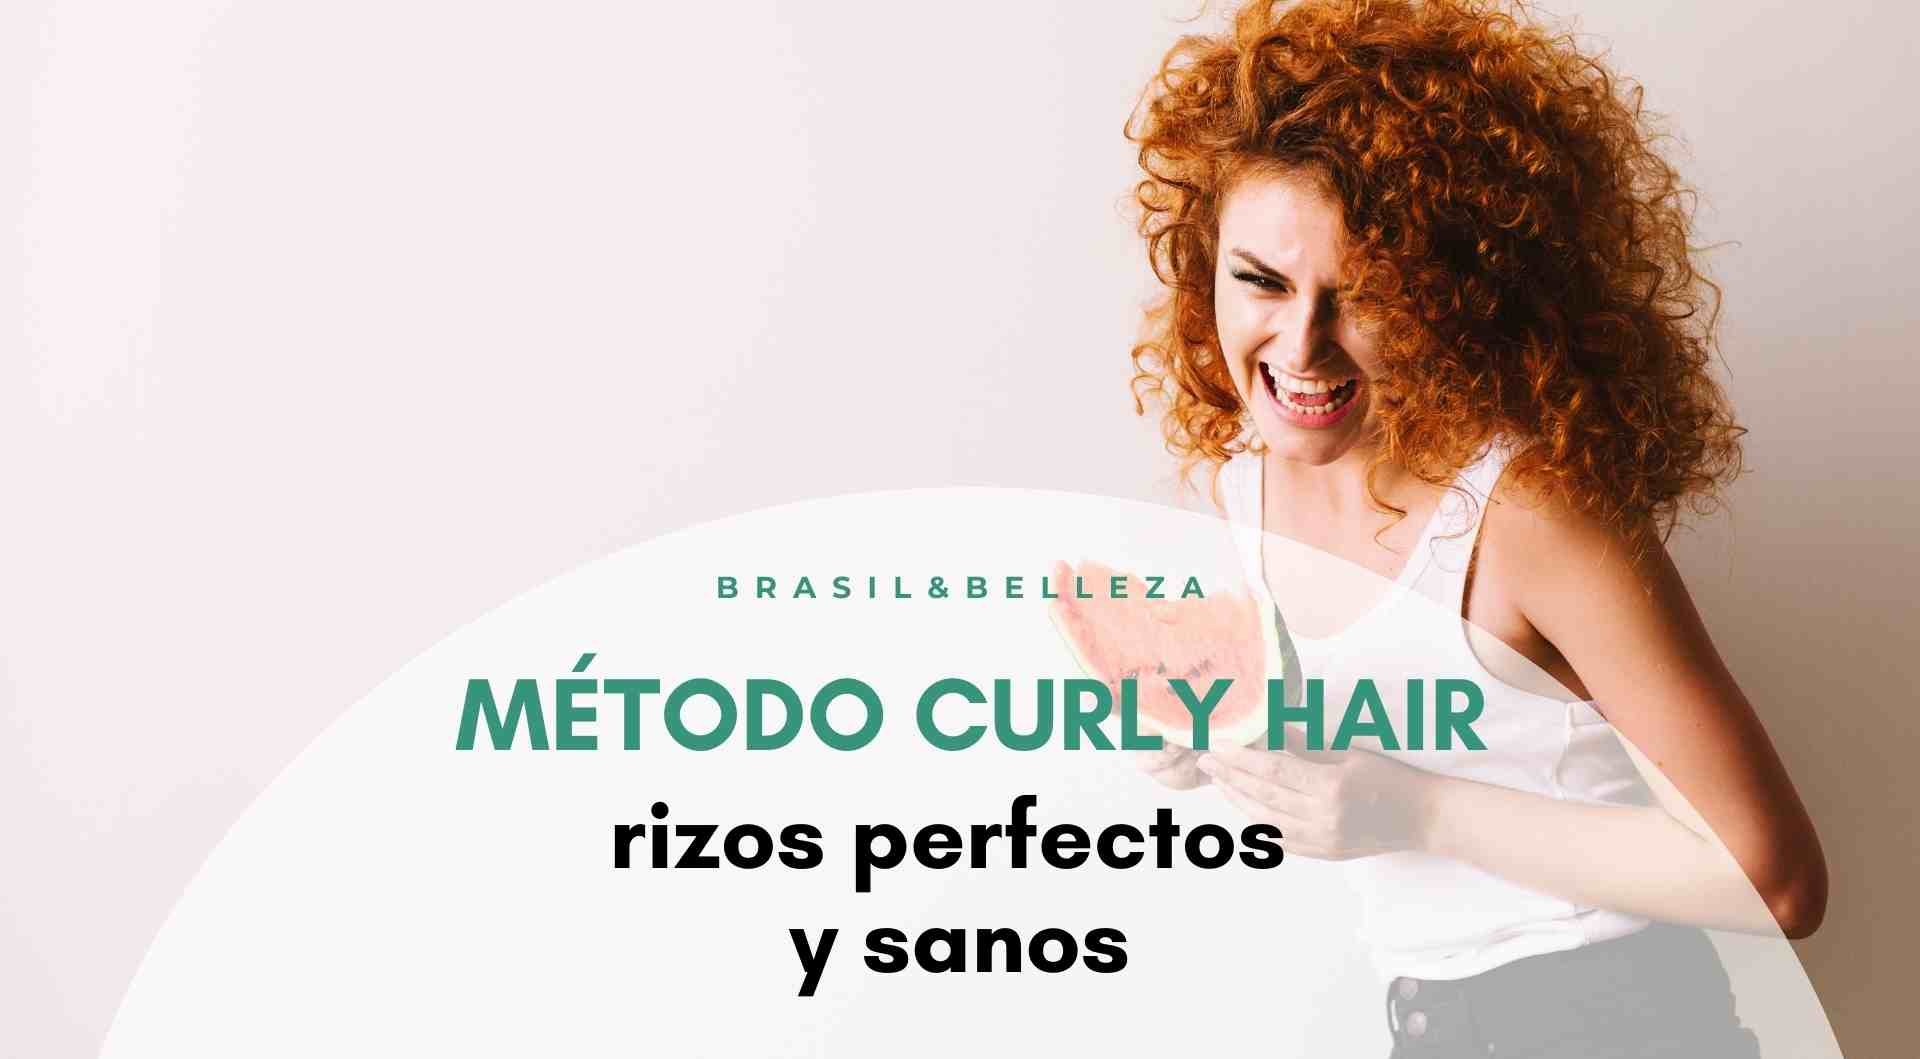 metodo-curly-hair-rizos-perfectos-y-sanos